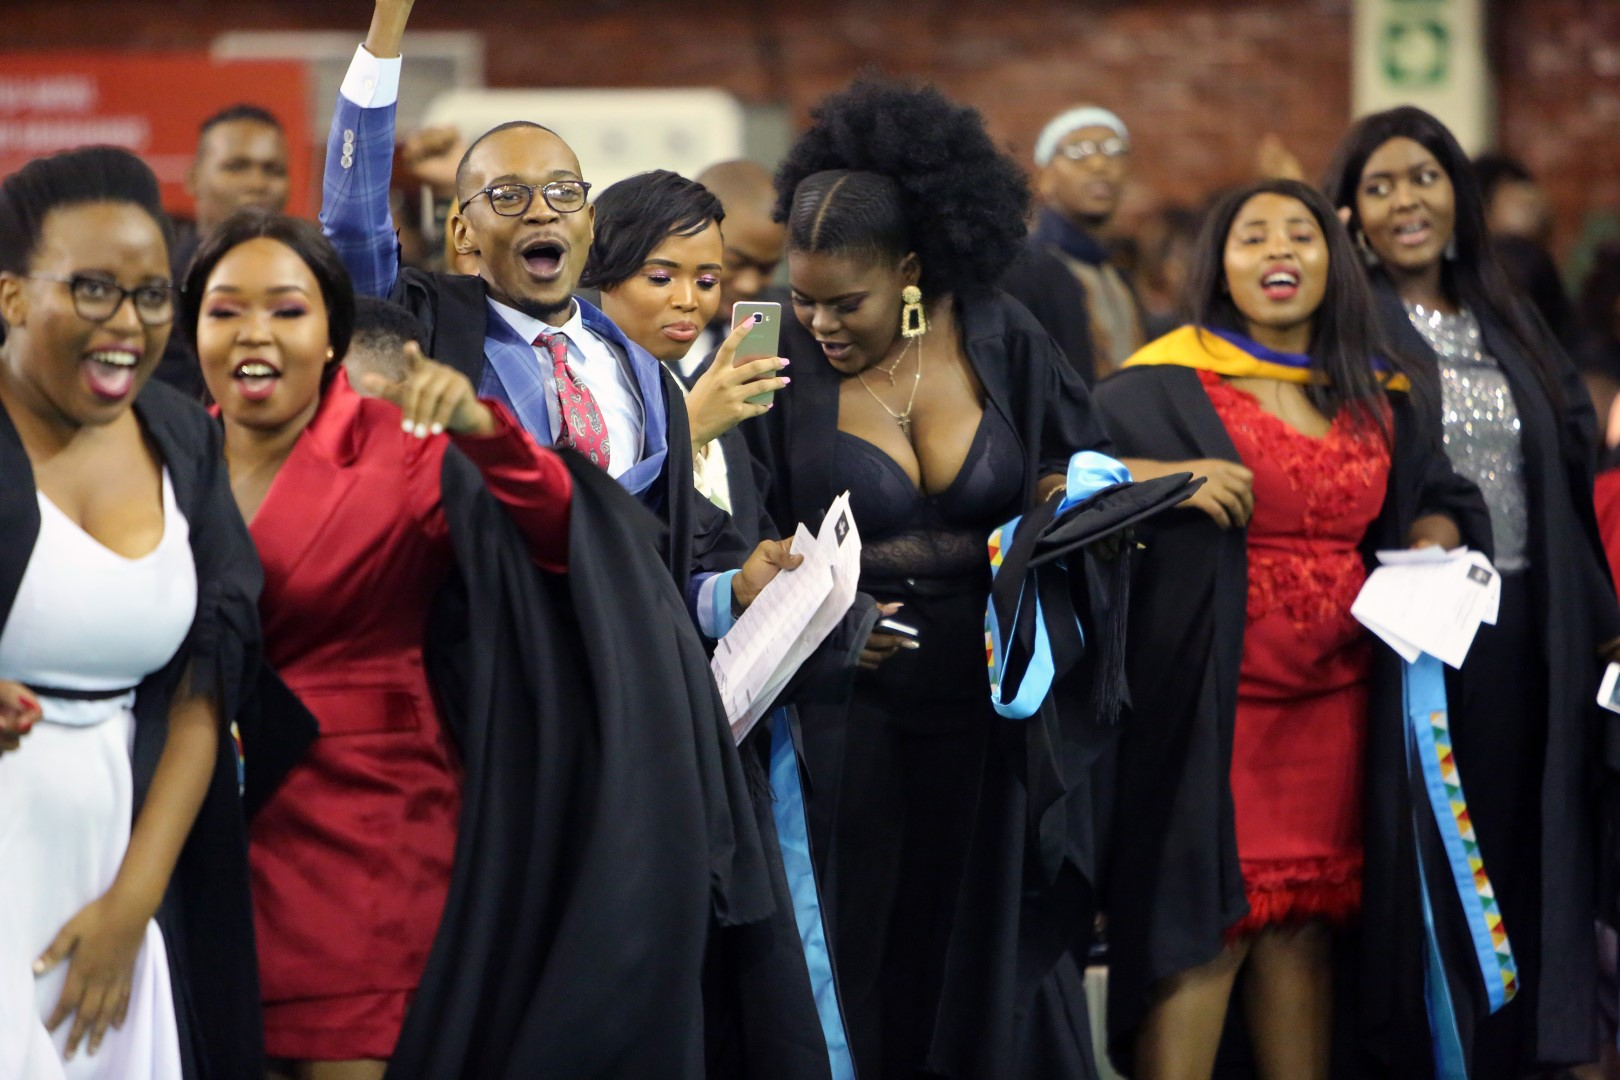 College of Humanities Graduates celebrate together